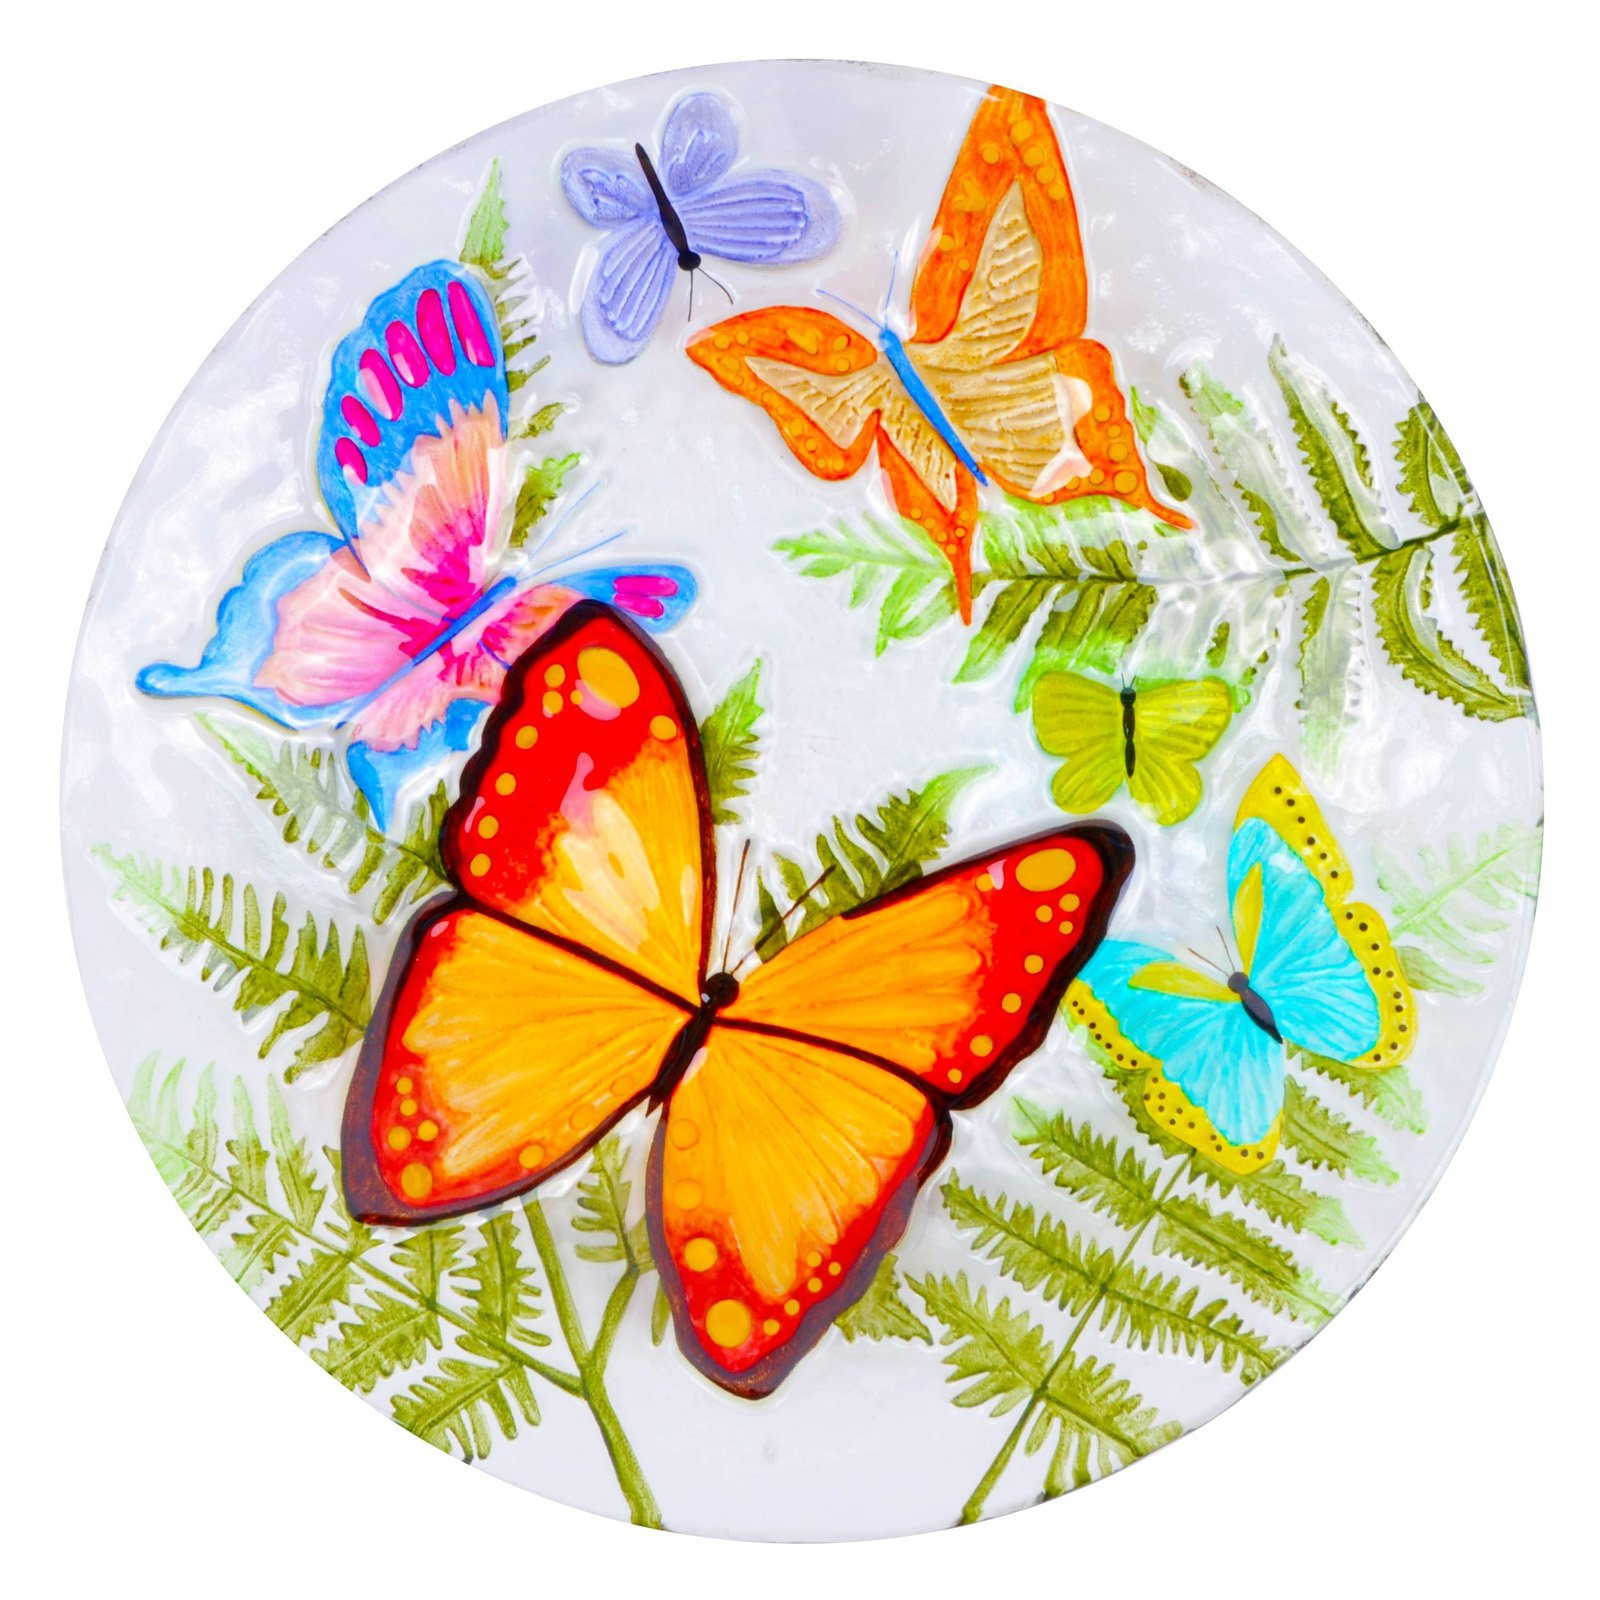 Continental Art Center Butterflies and Ferns Glass Plate